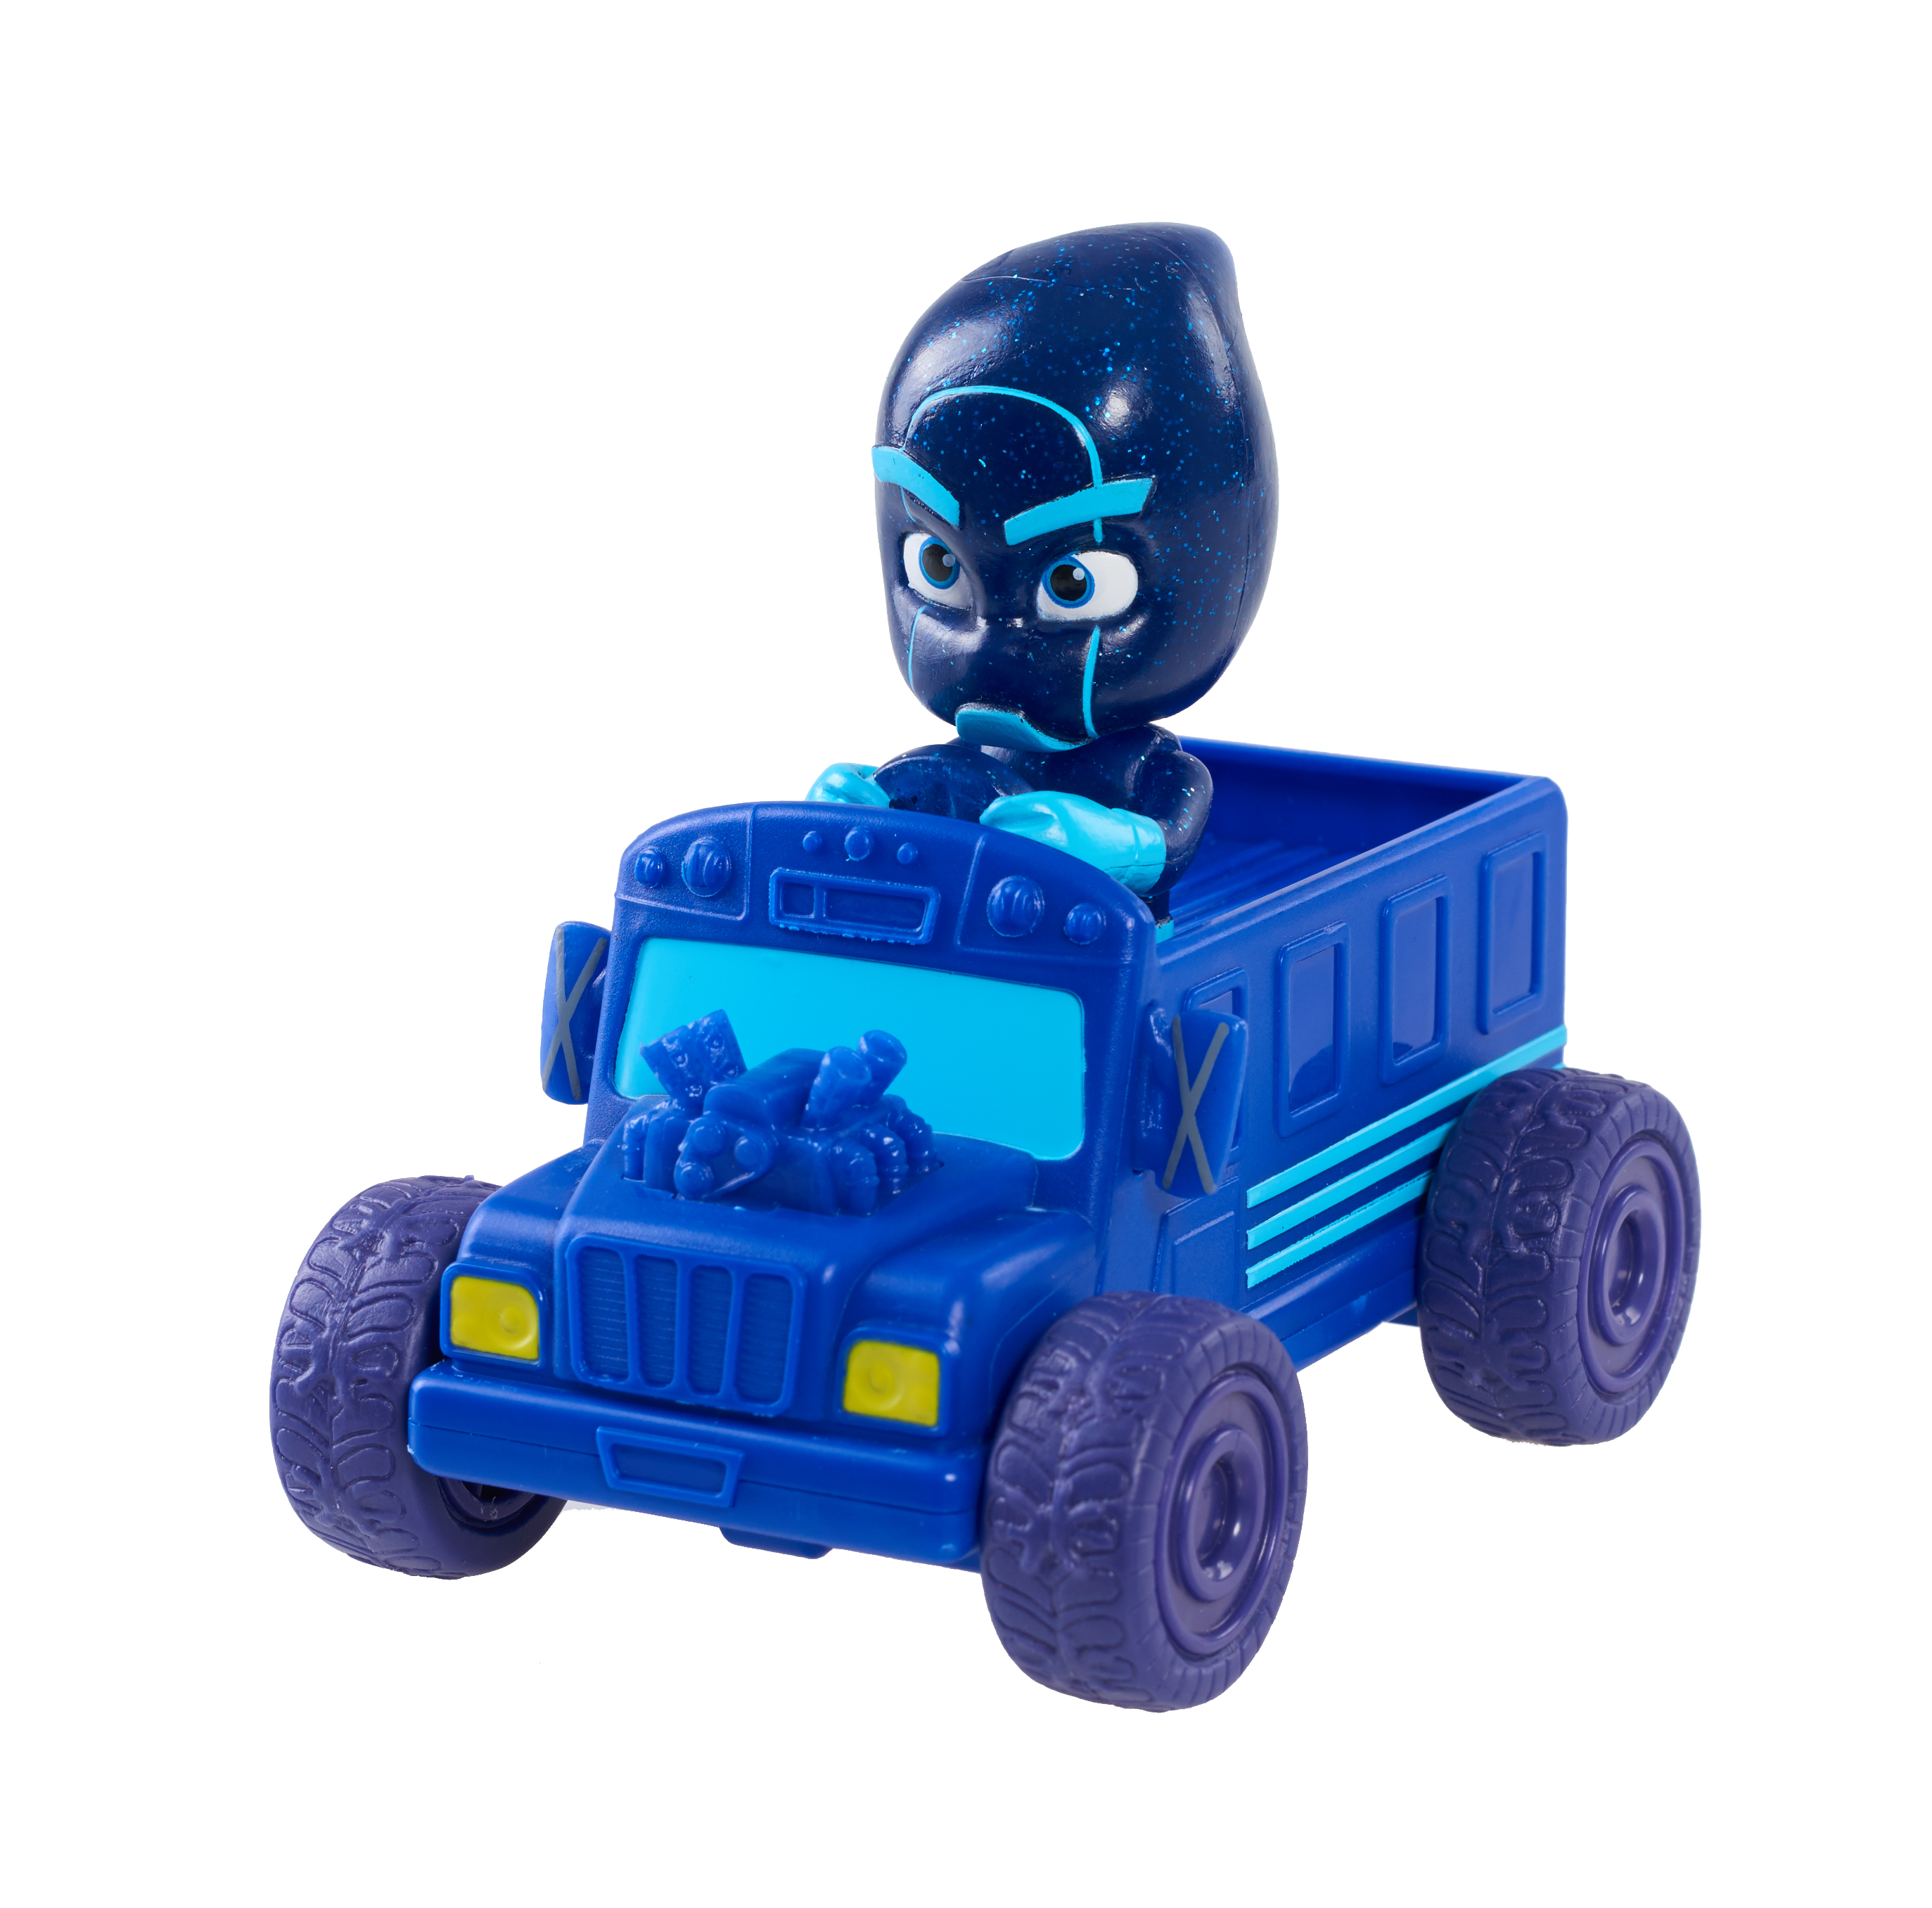 PJ Masks Mini Vehicle - Night Ninja